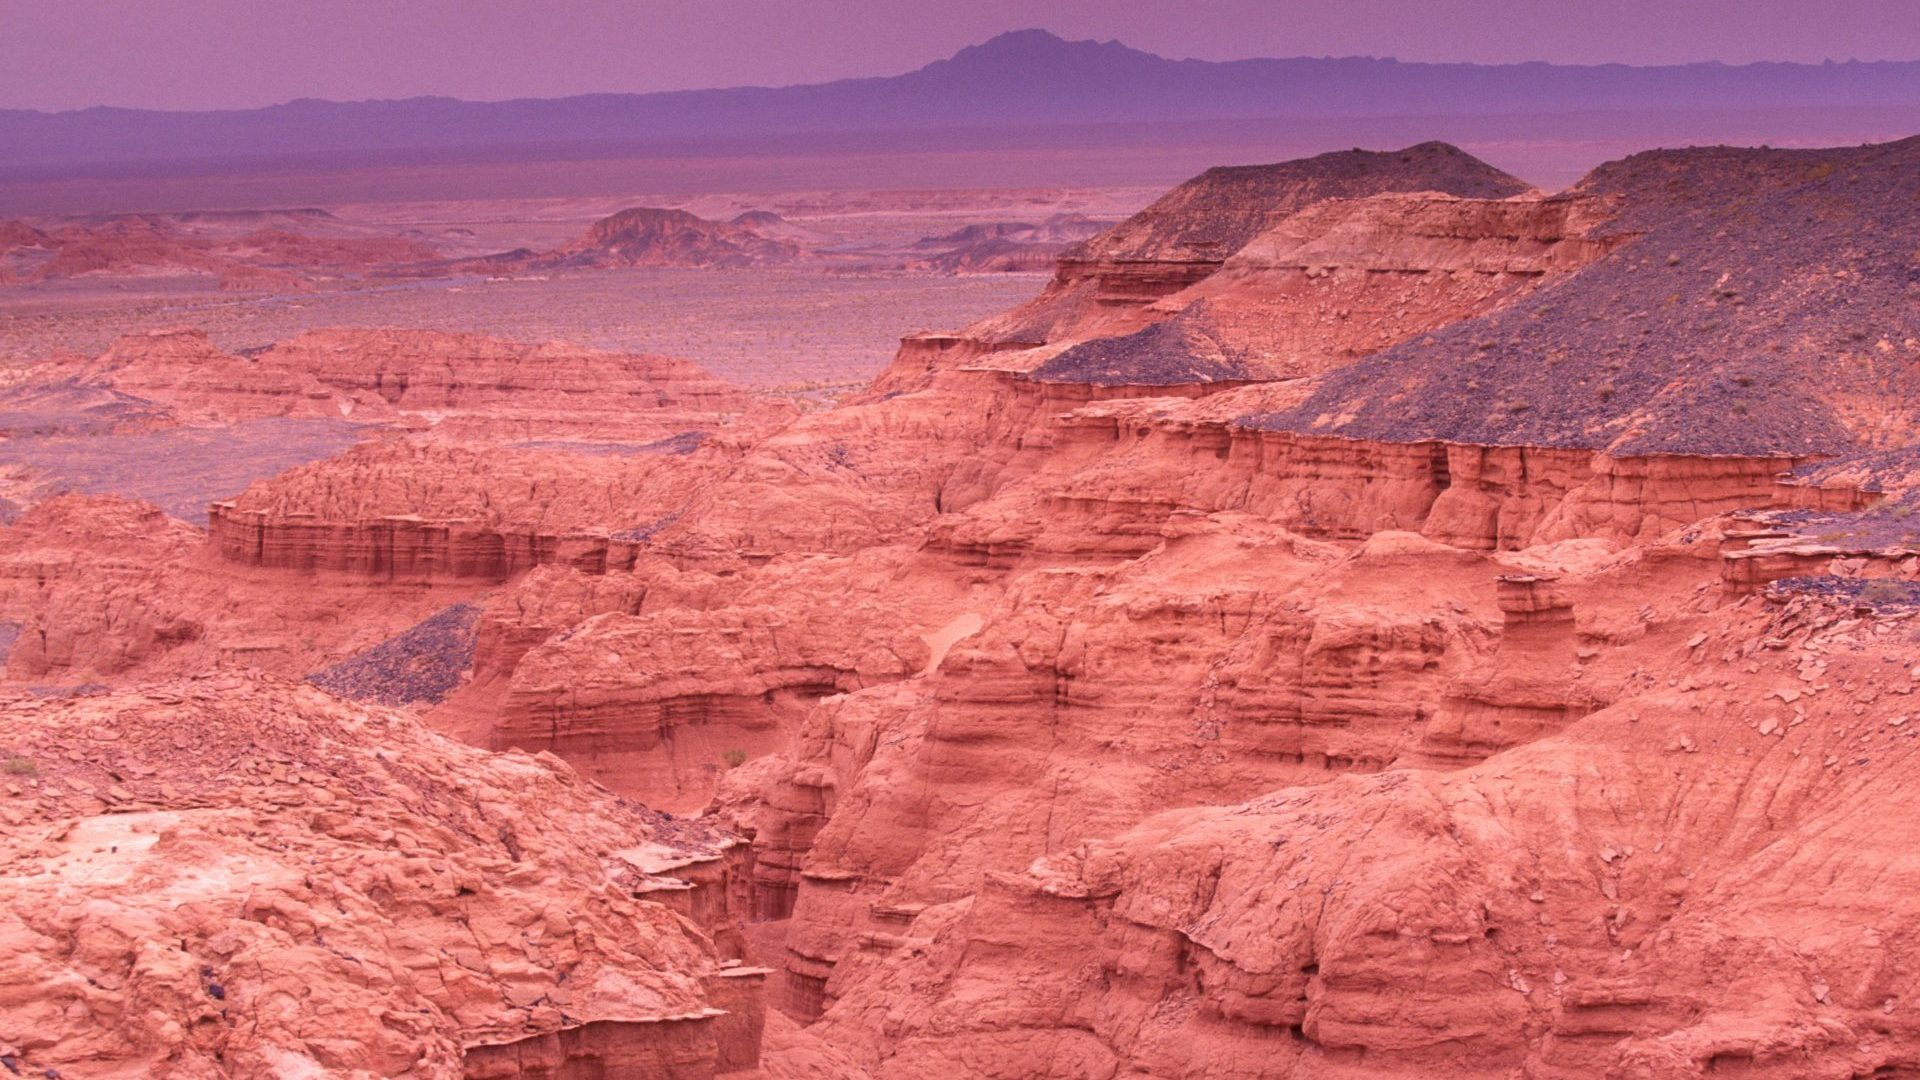 Flaming Cliffs in the Gobi Desert, Mongolia with GeoEx